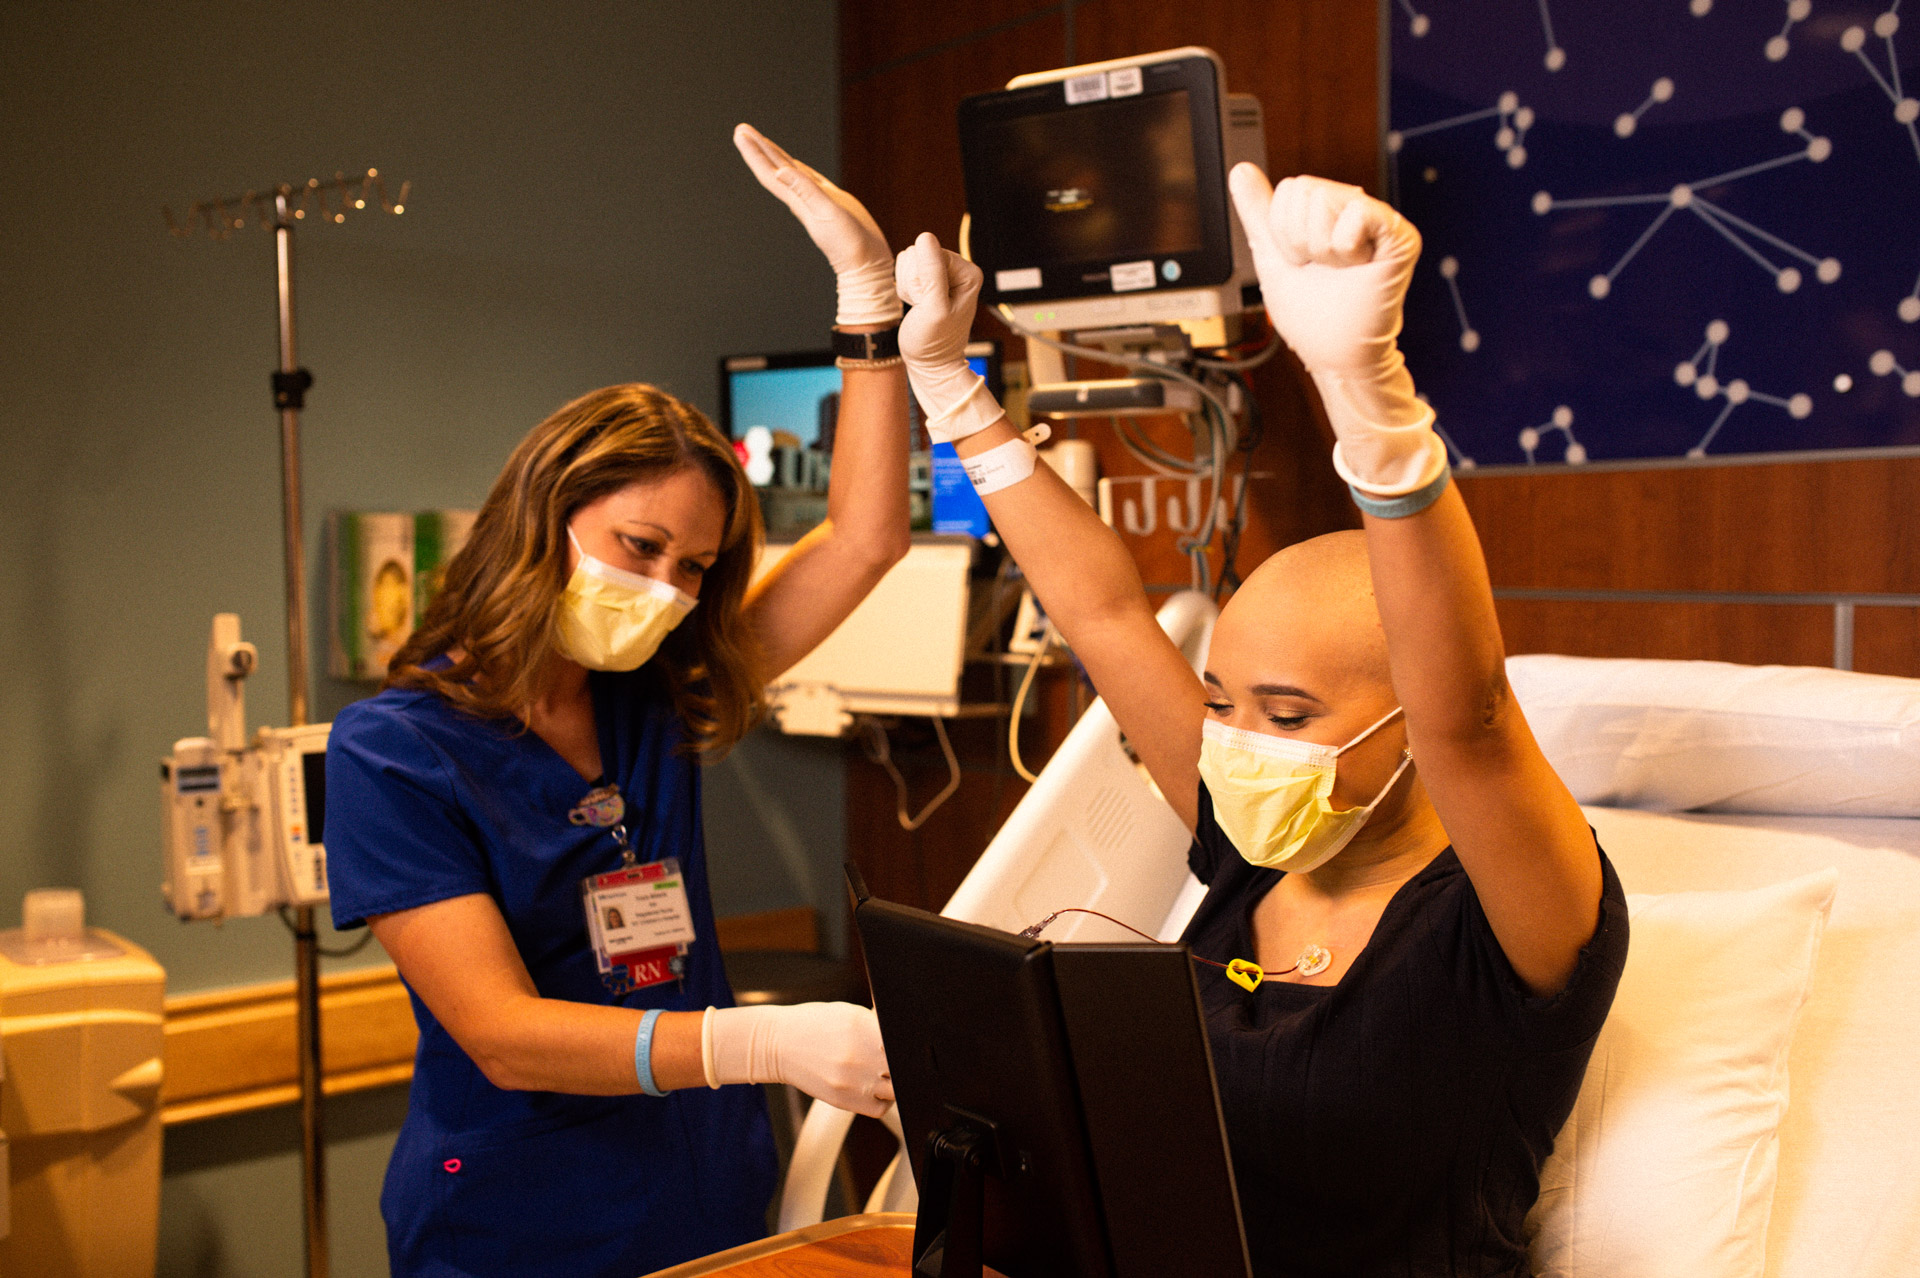 Savannah and her nurse do a victory cheer after Savannah successfully accesses her own port.